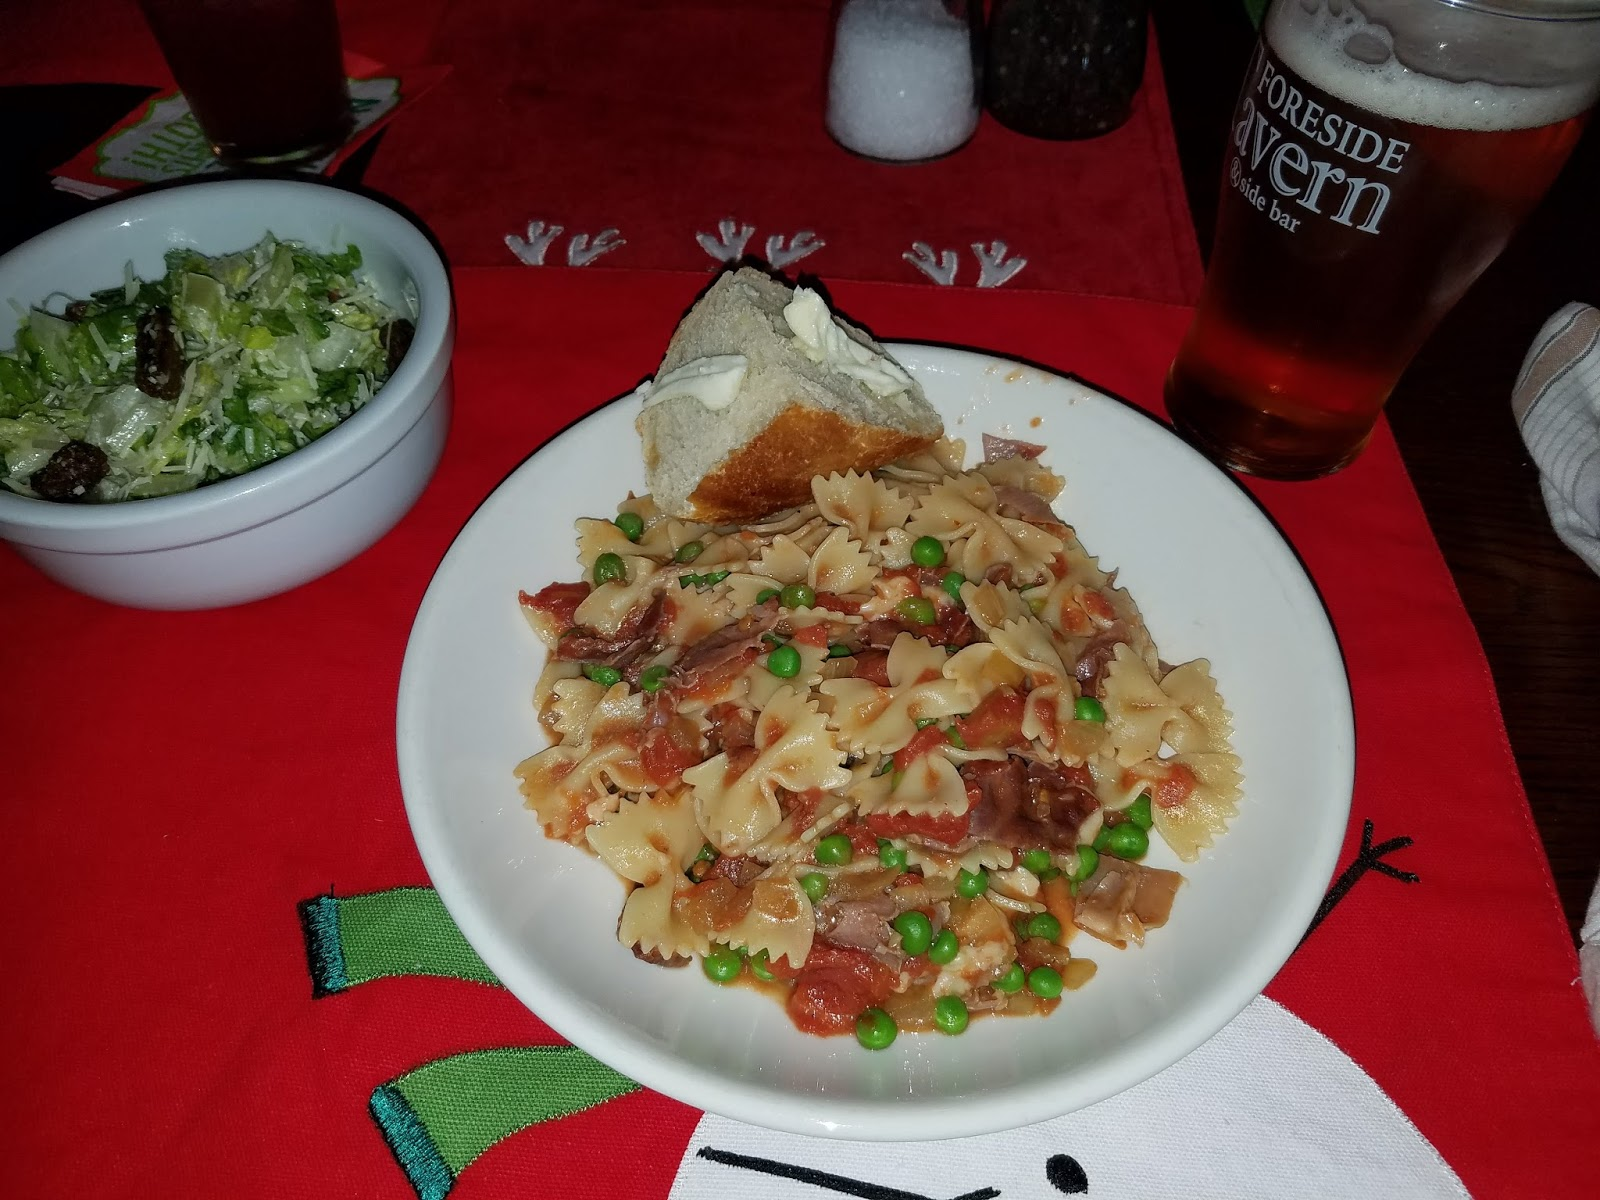 Meal Nineteen: Farfalle with Crispy Prosciutto and Peas